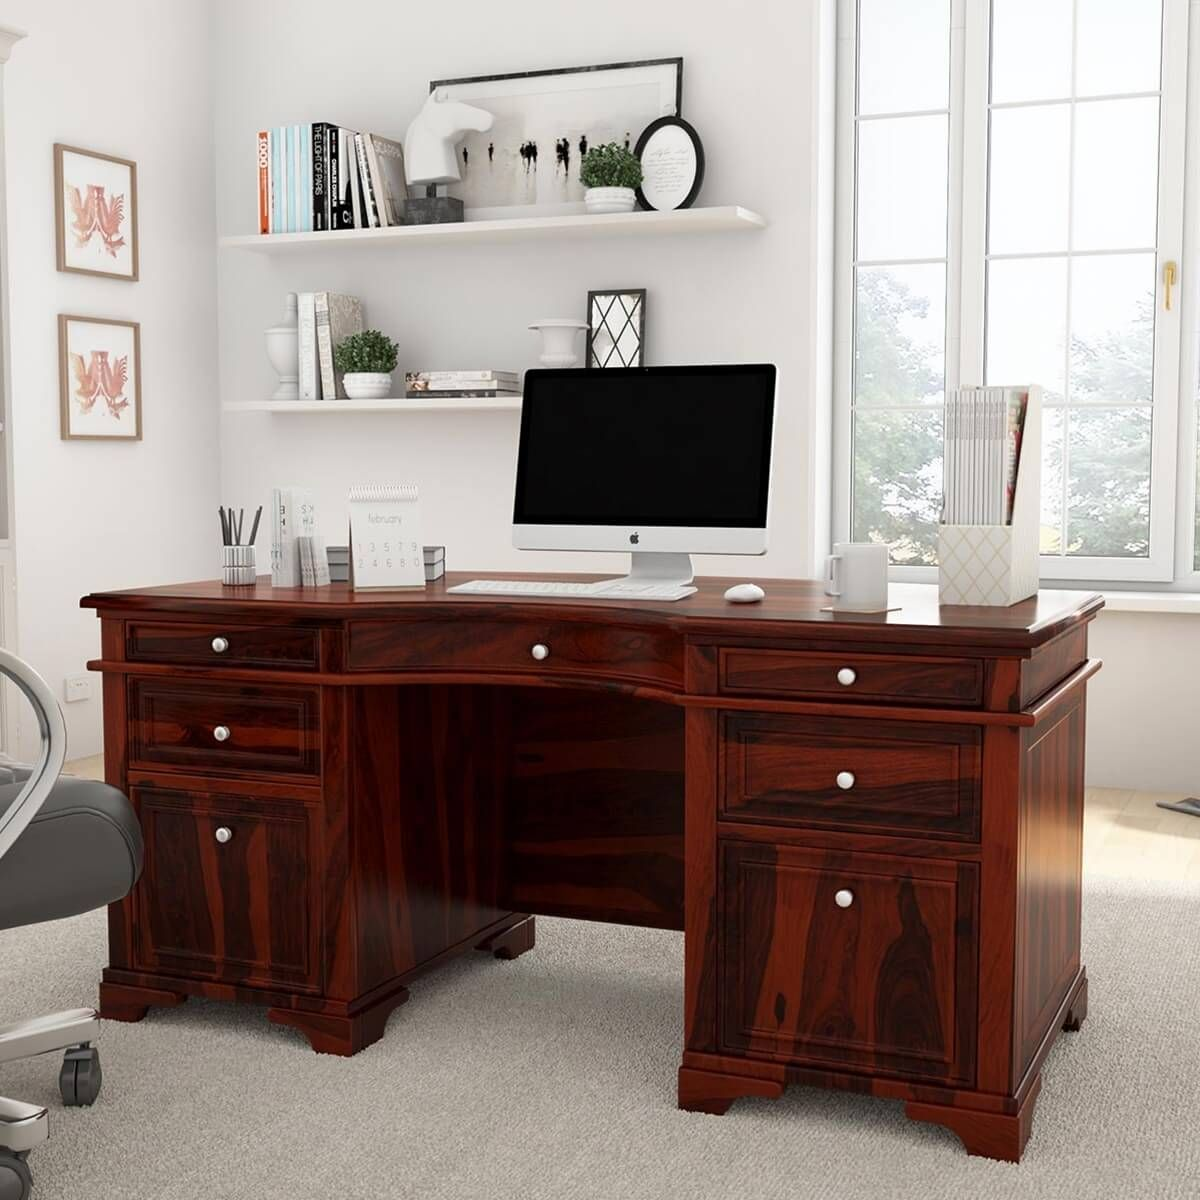 Nice 12 Clever Concepts Of How To Make Rustic Home Office Desk For You Rustic Home Offices Home Office Design Home Desk